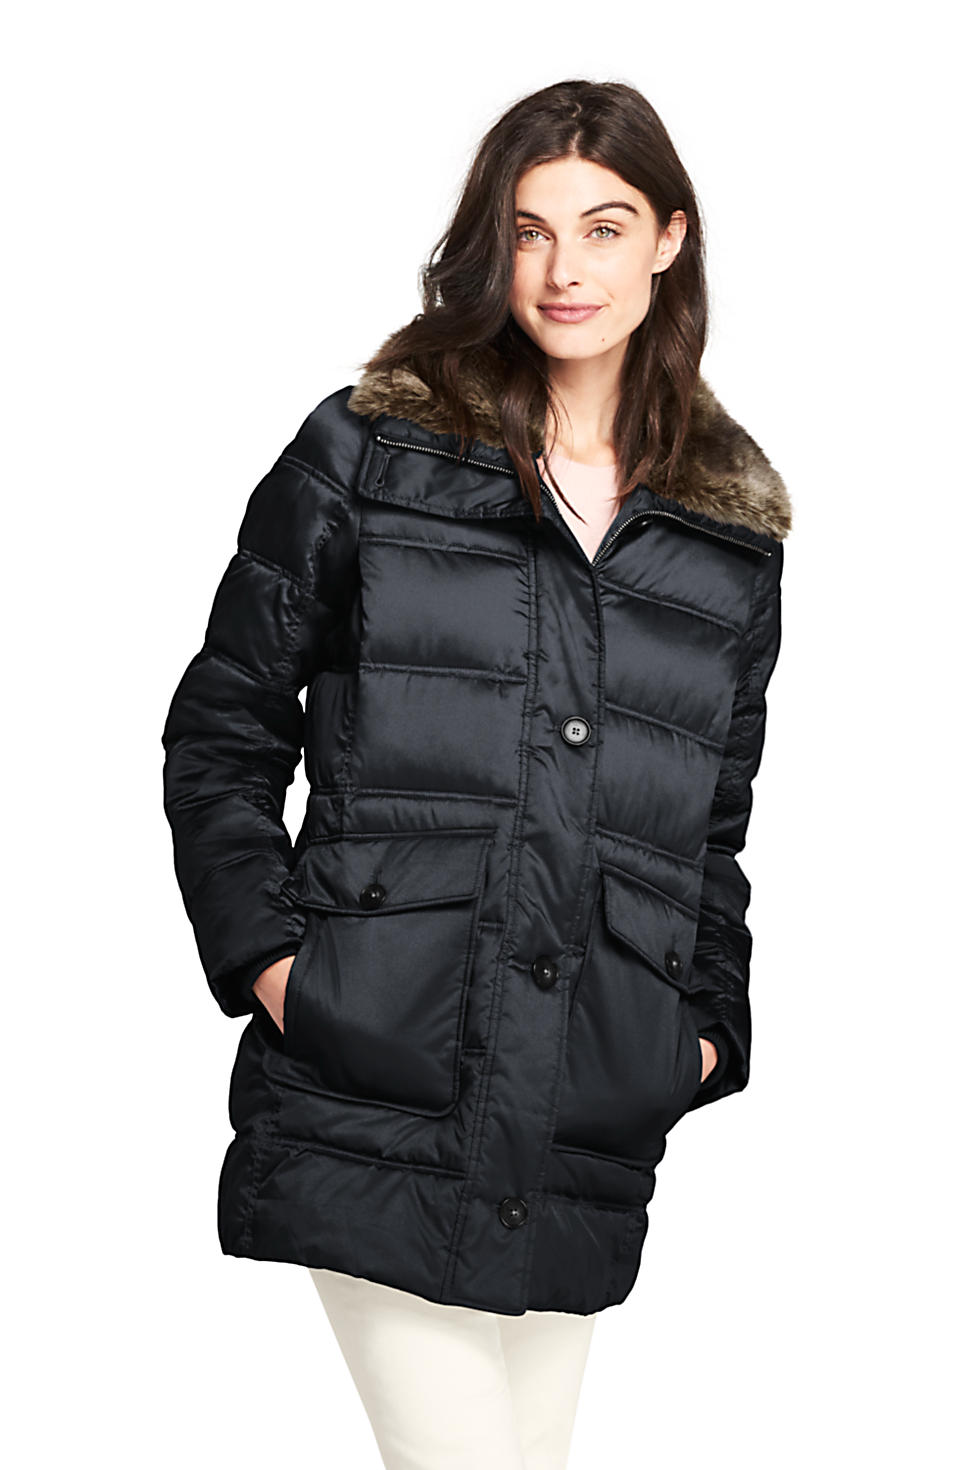 Lands End Women's Insulated Winter Puffer Parka